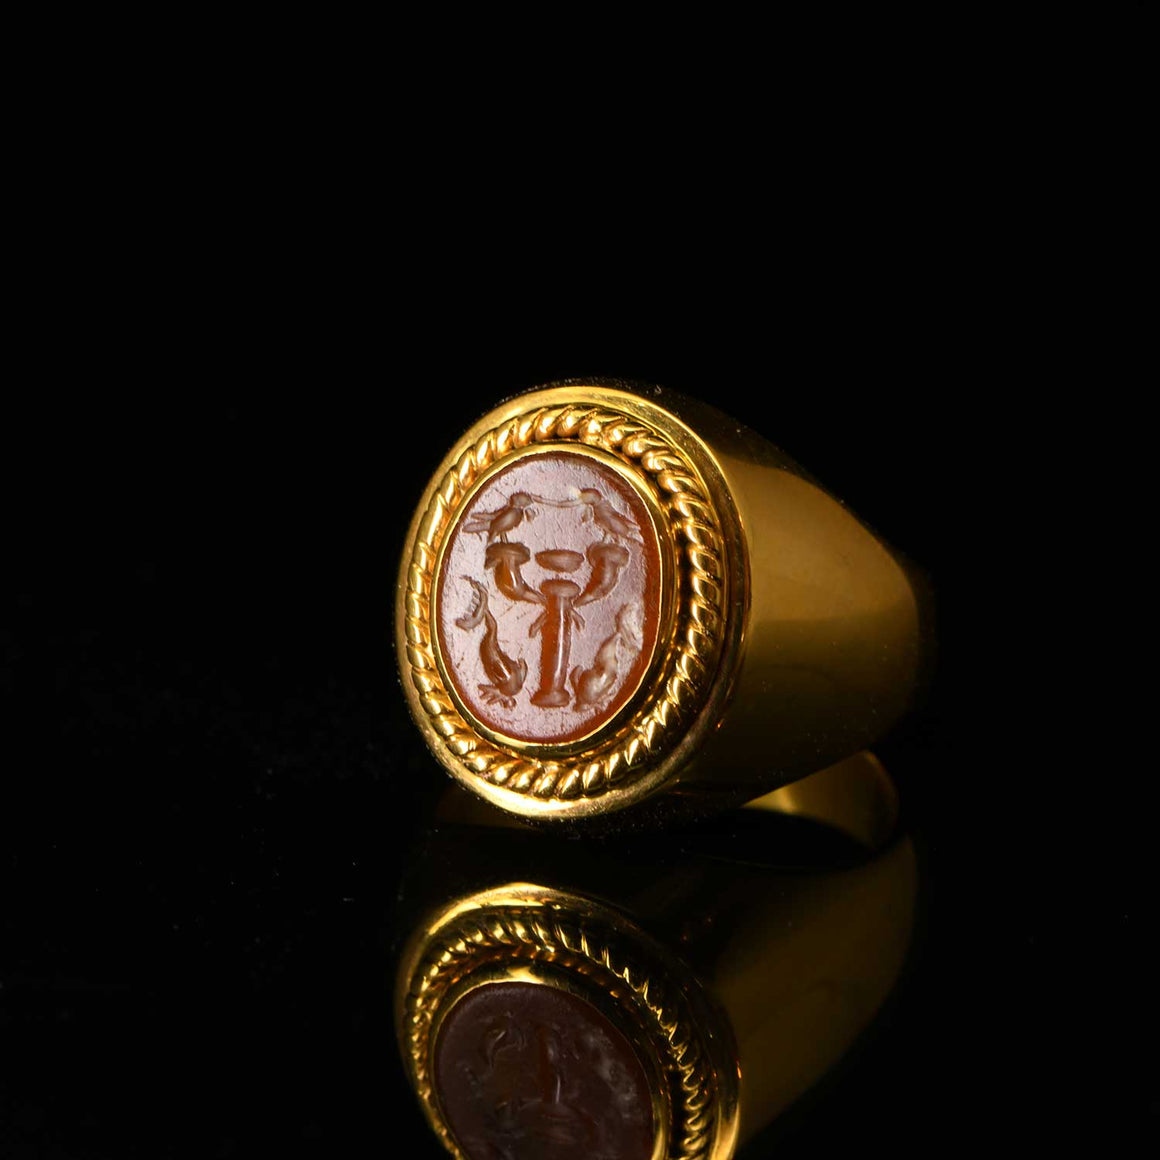 A Roman carnelian ringstone intaglio, ca 1st century CE - Sands of Time Ancient Art